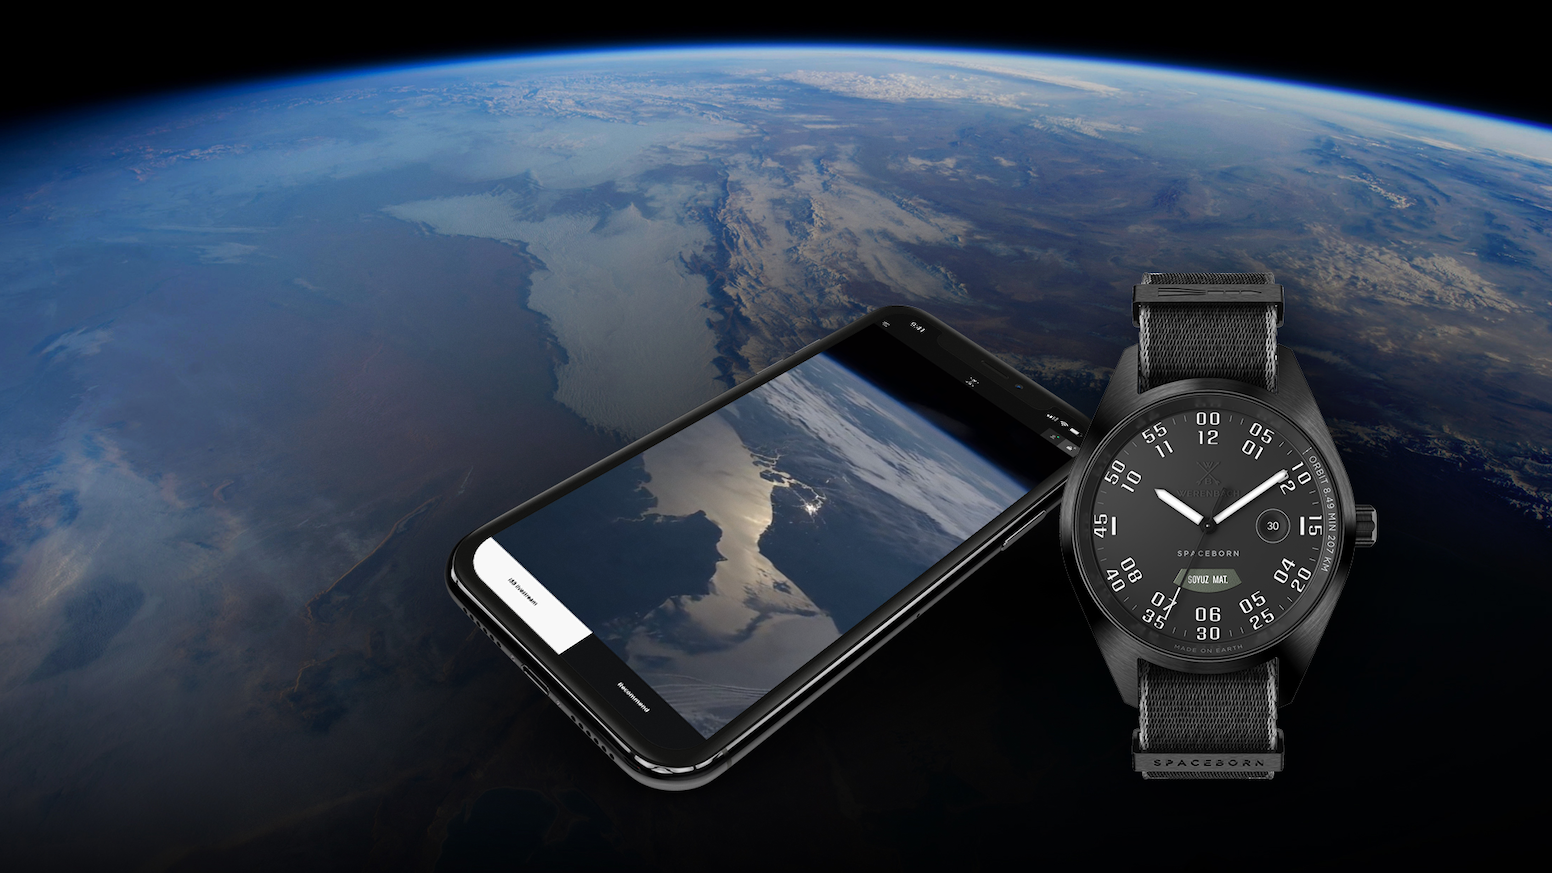 Swiss watches not only containing real Soyuz rocket material at their heart but also connecting to the ISS live stream.